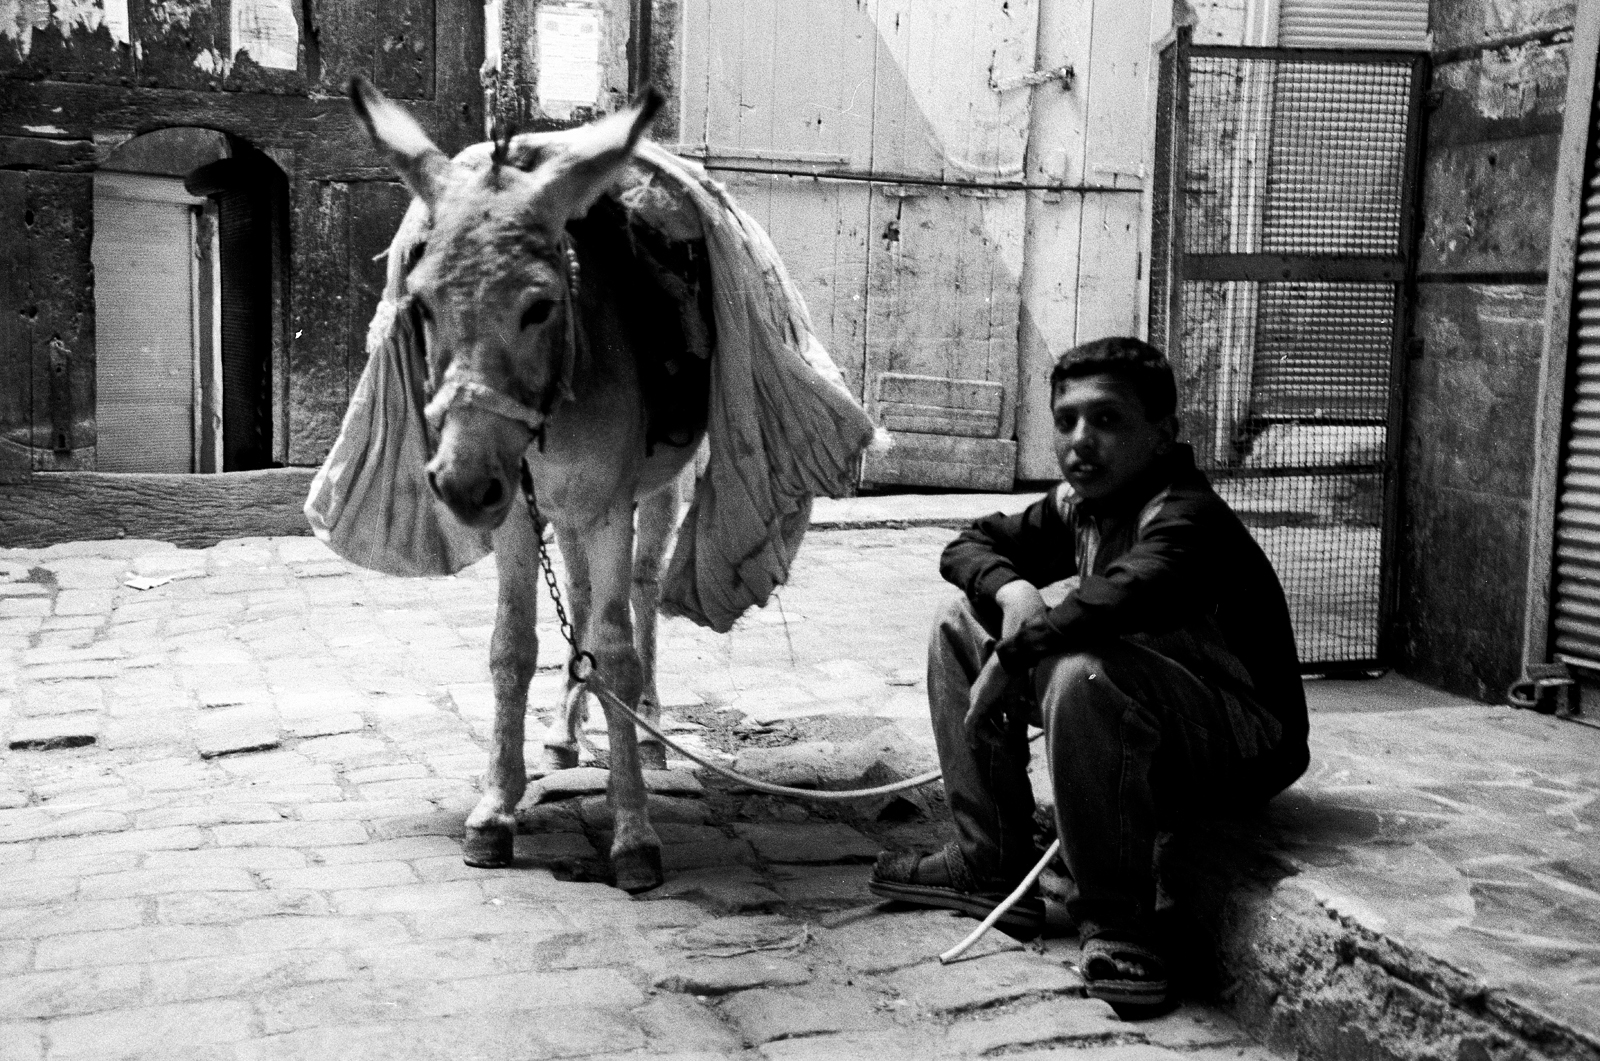 A young boy and his donkey take a break in the old town of Aleppo